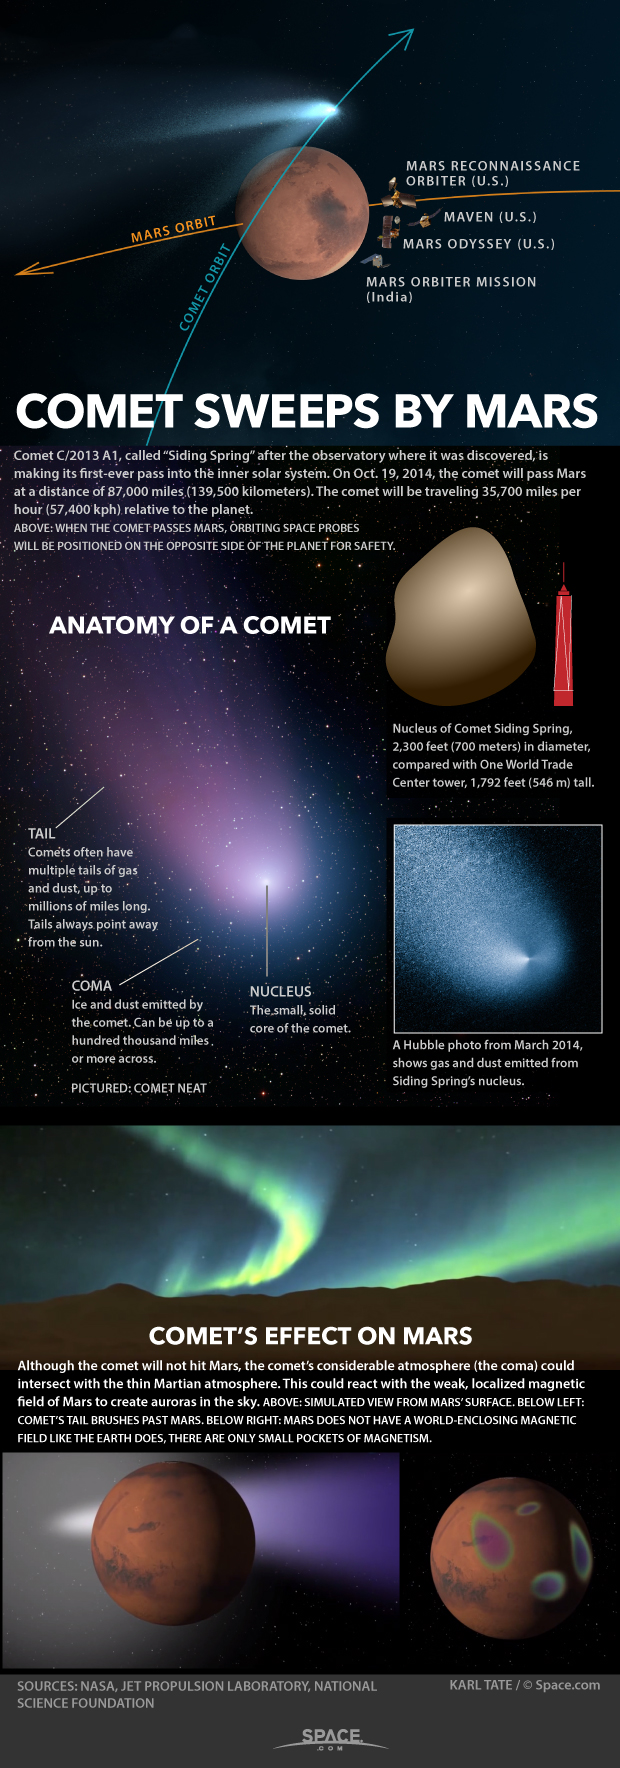 Diagrams show how comet will approach Mars.